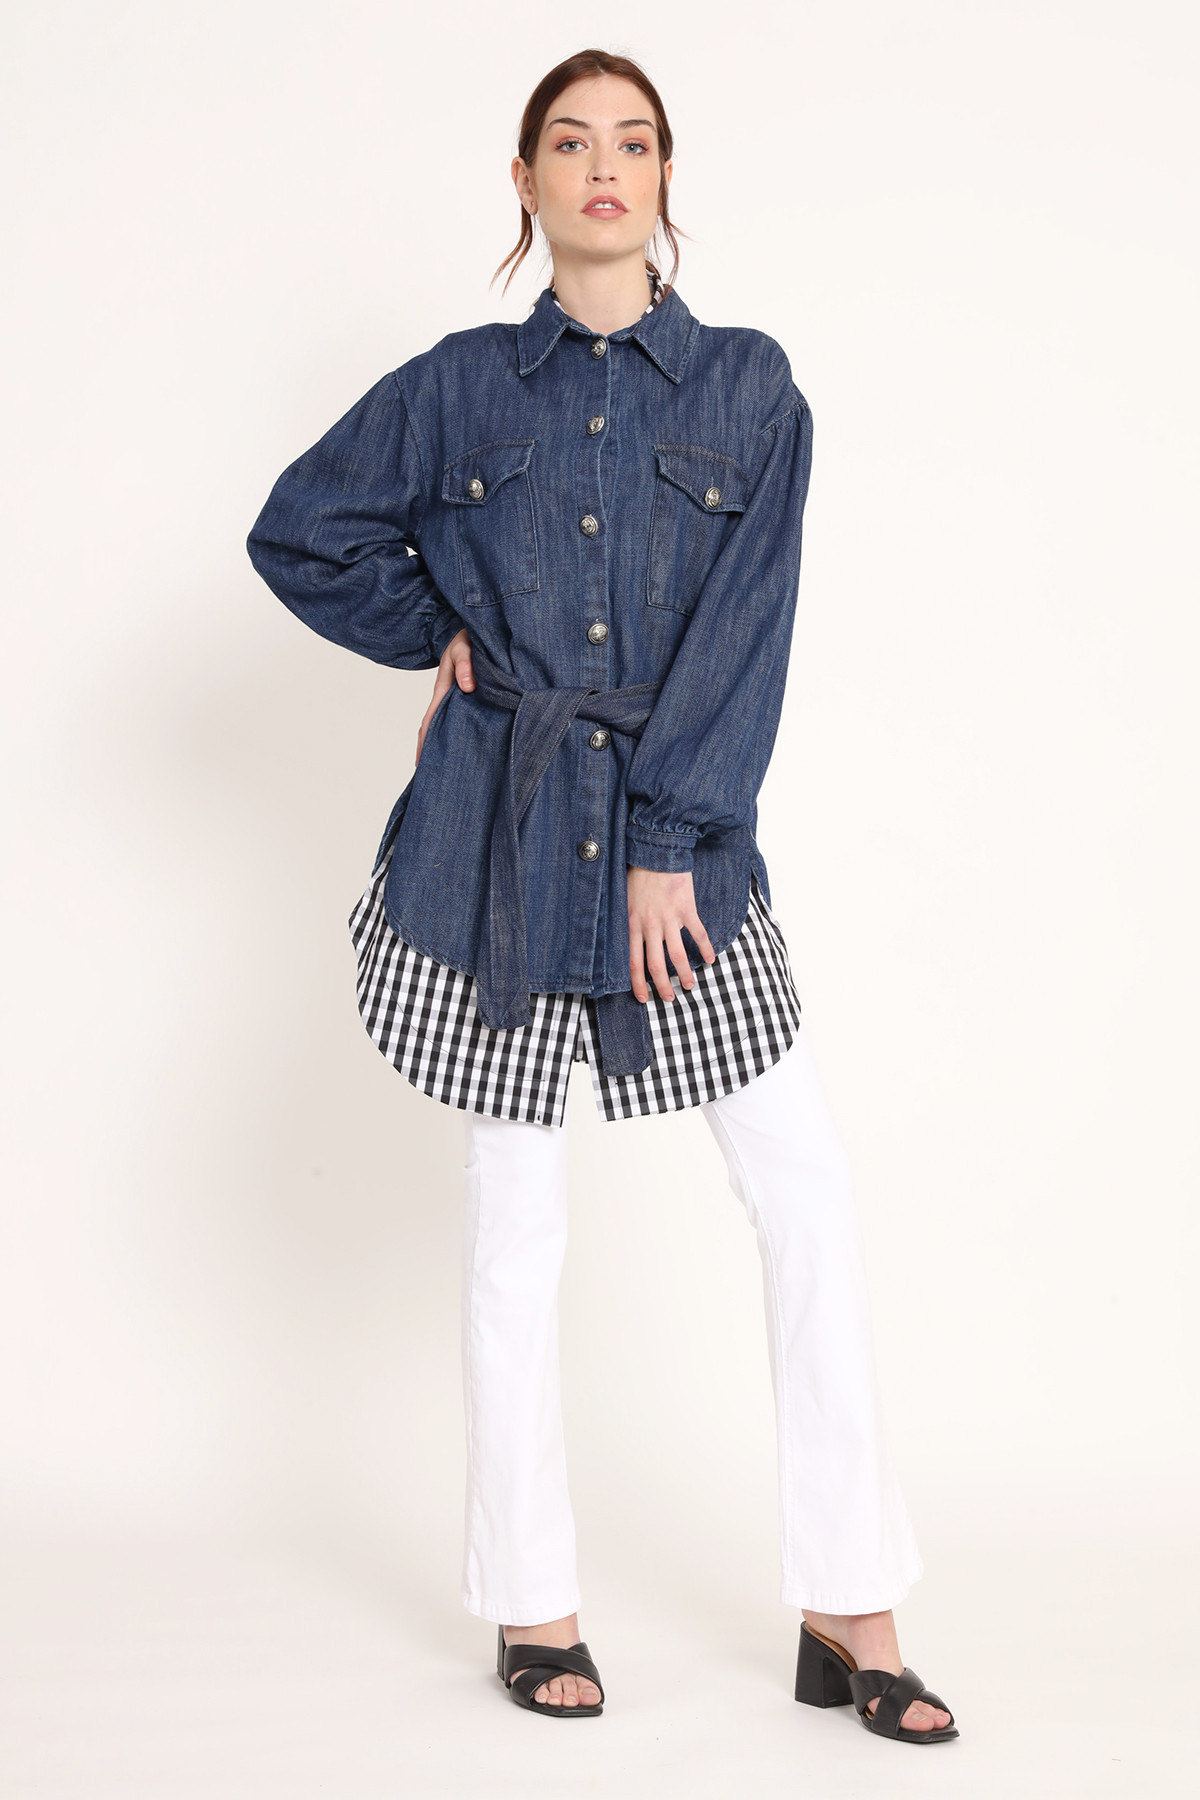 Over Denim Jacket with Balloon Sleeves